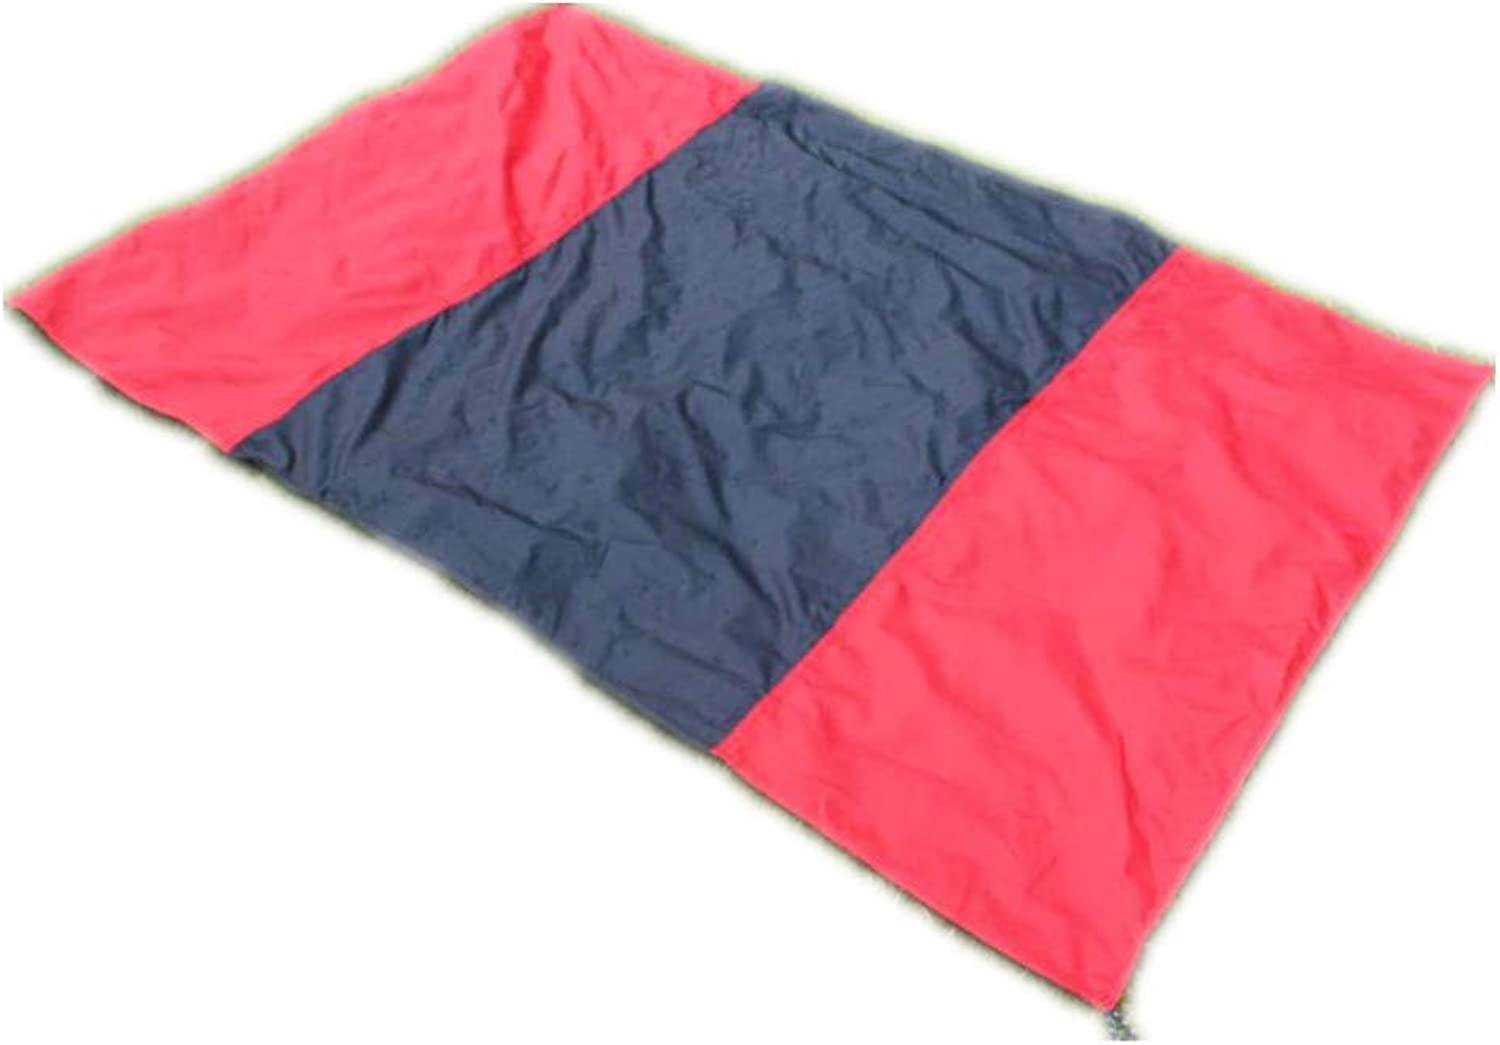 Super explosion Outdoor & Picnic Blanket Extra Large Sand Proof and Waterproof Portable Beach Mat for Camping Hiking Festivals